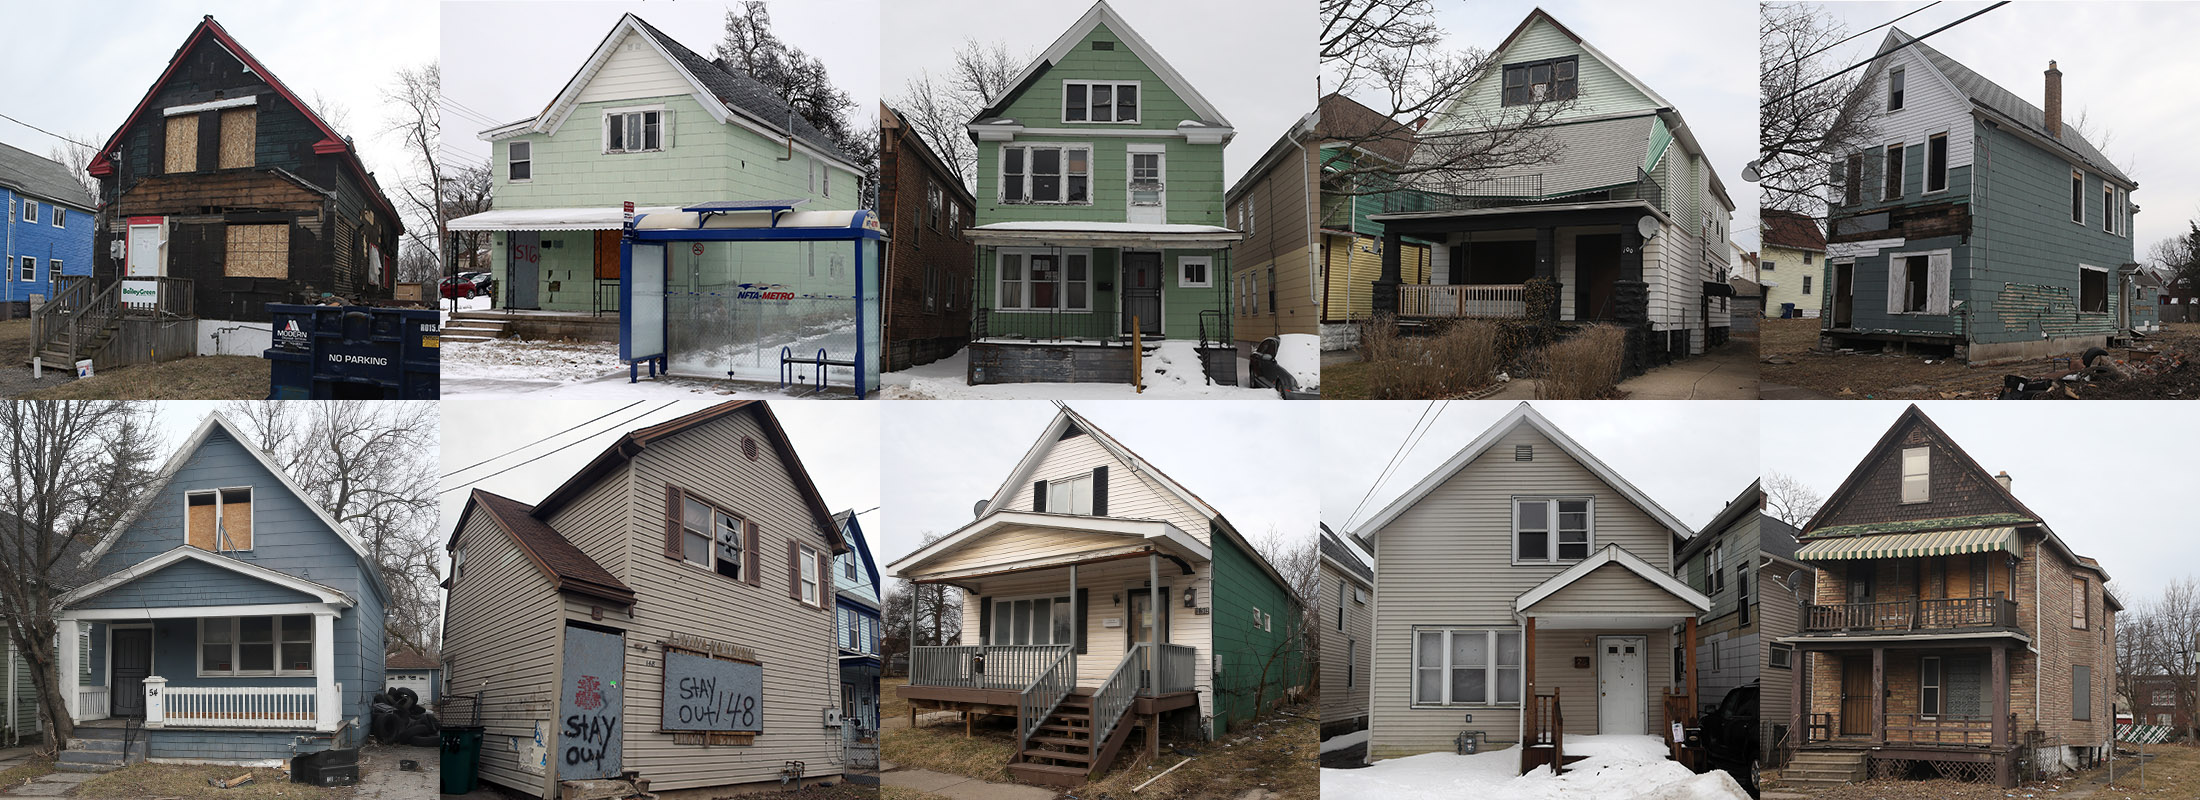 Kuwaiti real estate broker AbdulAziz HouHou and his companies flipped 160 houses in Buffalo between 2013 and 2016. (John Hickey/Buffalo News)